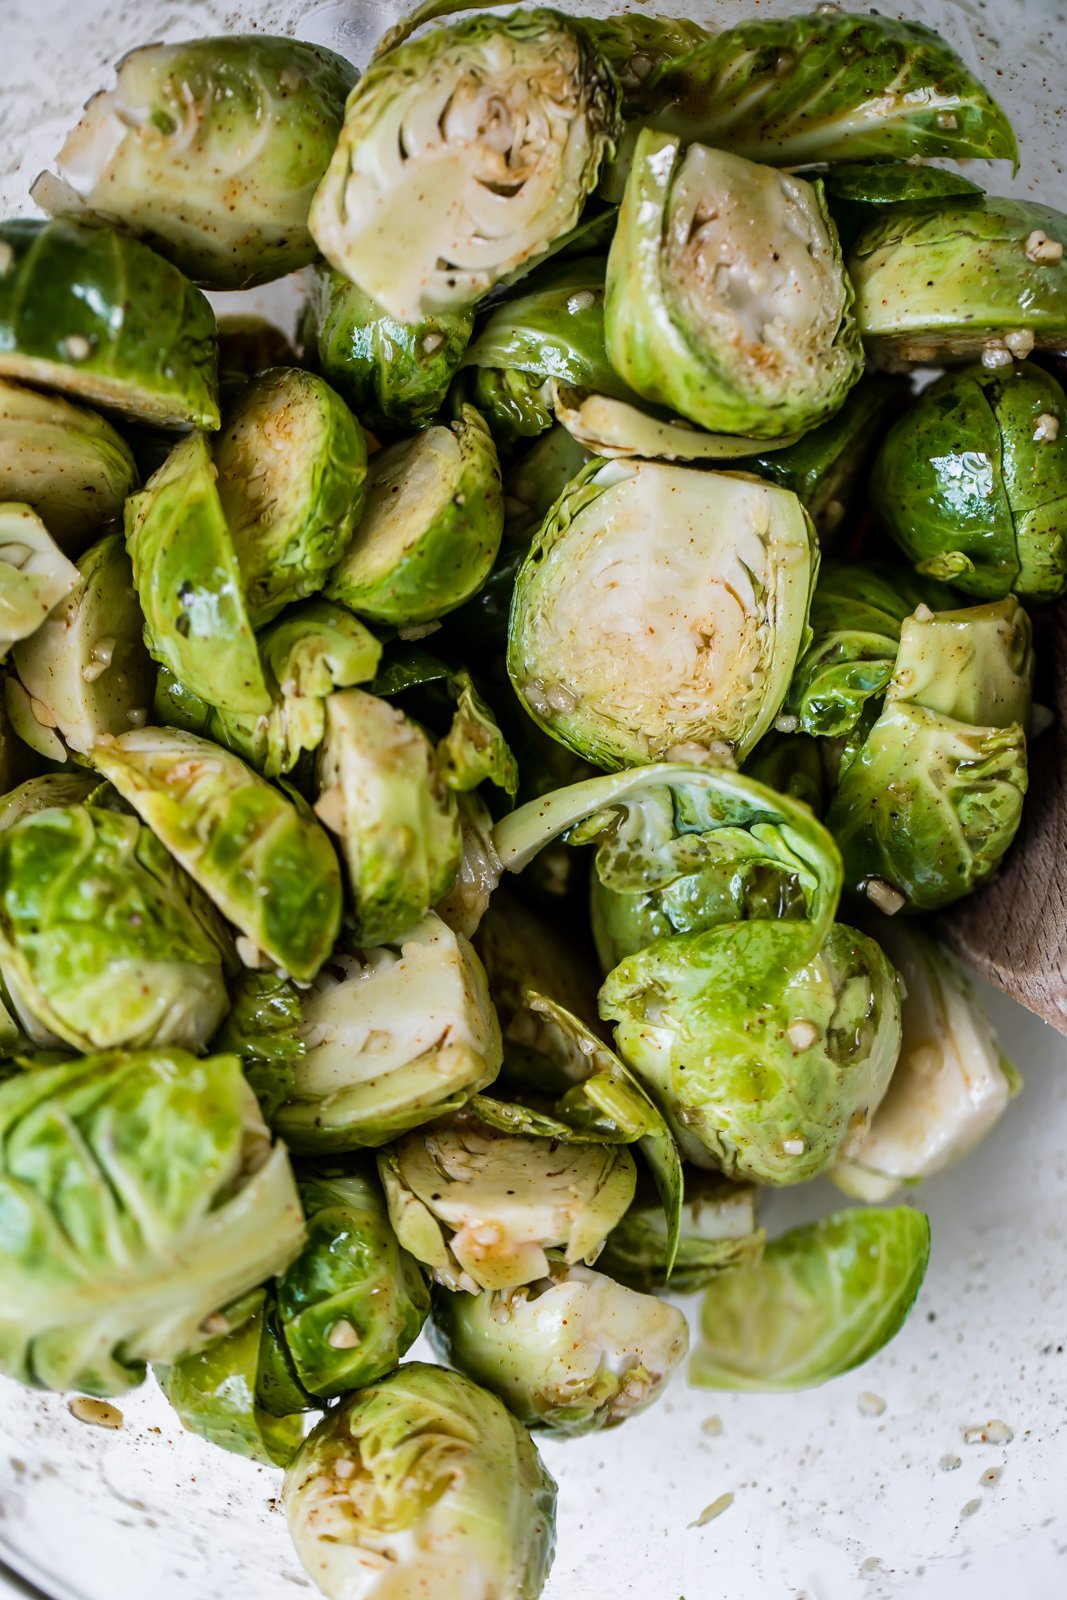 Spicy maple grilled brussels sprouts in a bowl